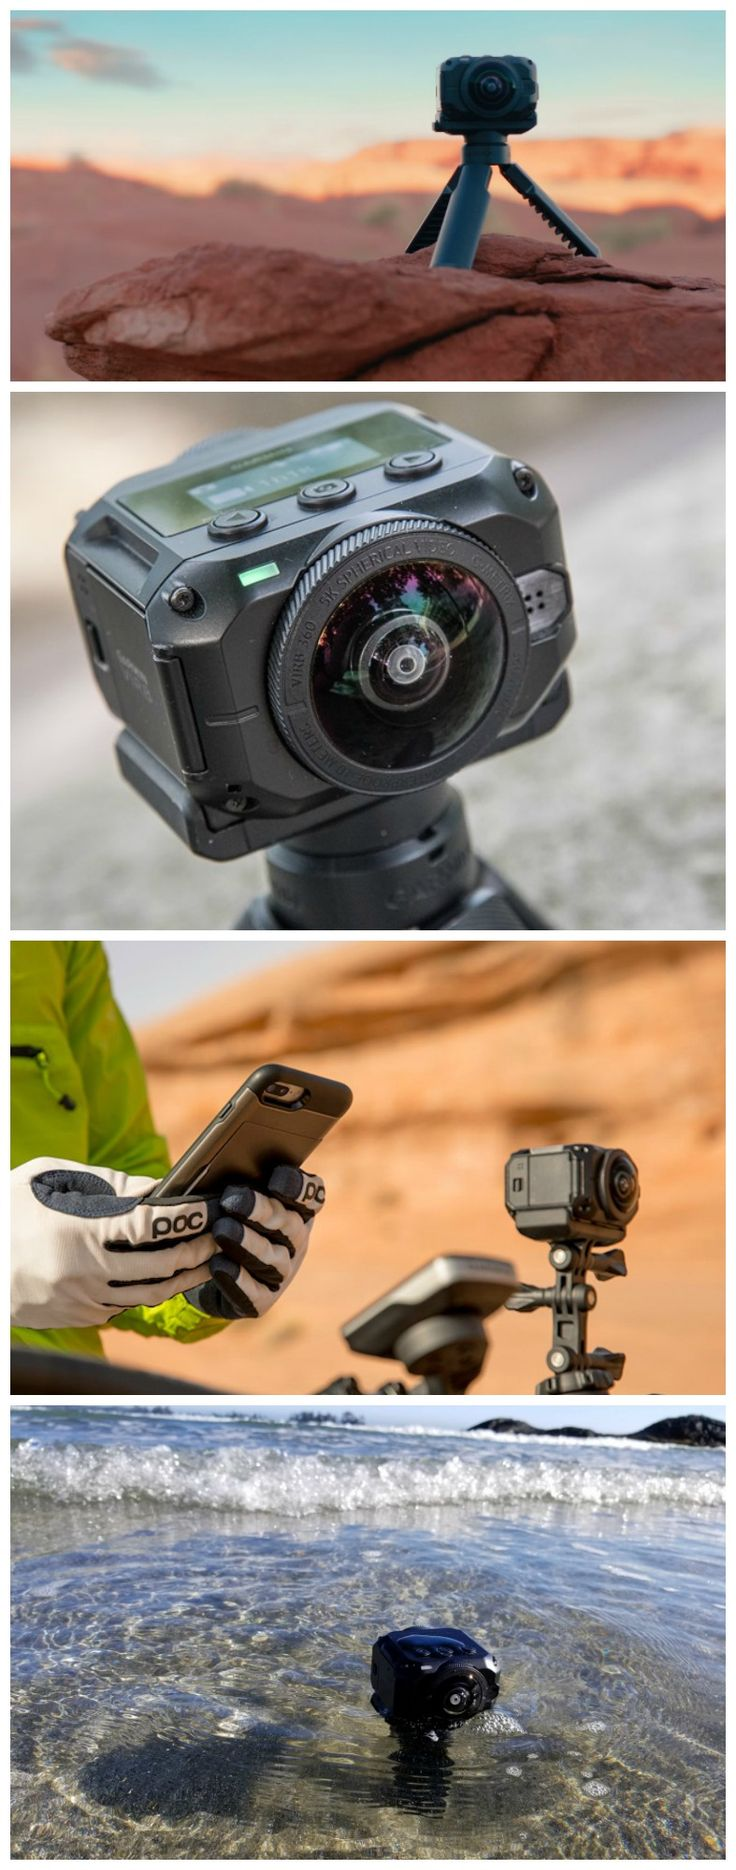 Garmin Virb 360 - Rugged, Waterproof 360-degree Action Camera with 5.7K/30fps Resolution and 4K Spherical Stabilization. #affiliate